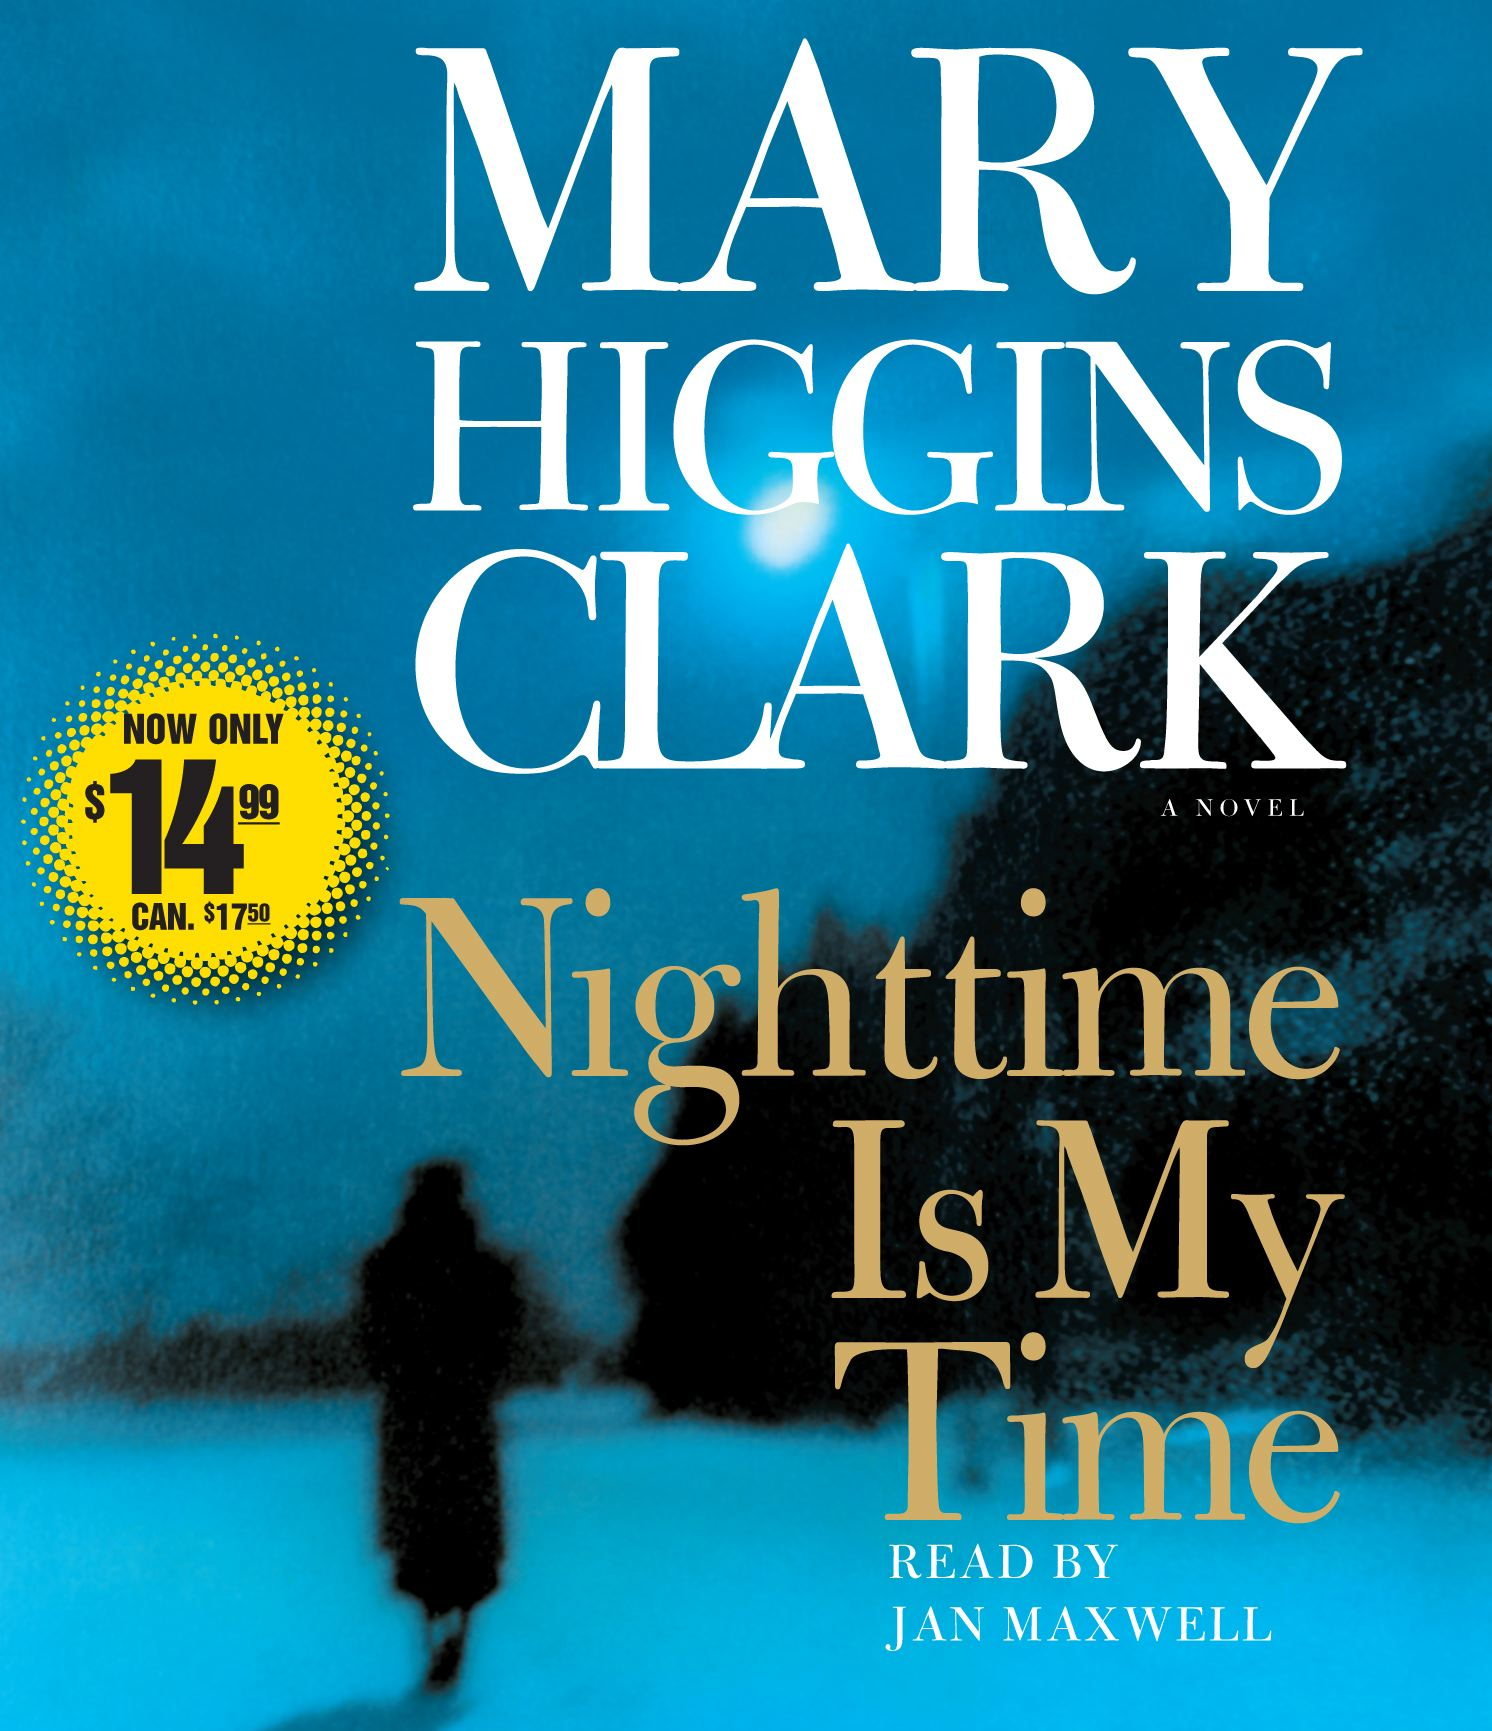 an introduction to the life of mary higgins clark Find all available study guides and summaries for we'll meet again by mary higgins clark if there is a sparknotes, shmoop, or cliff notes guide, we will have it.